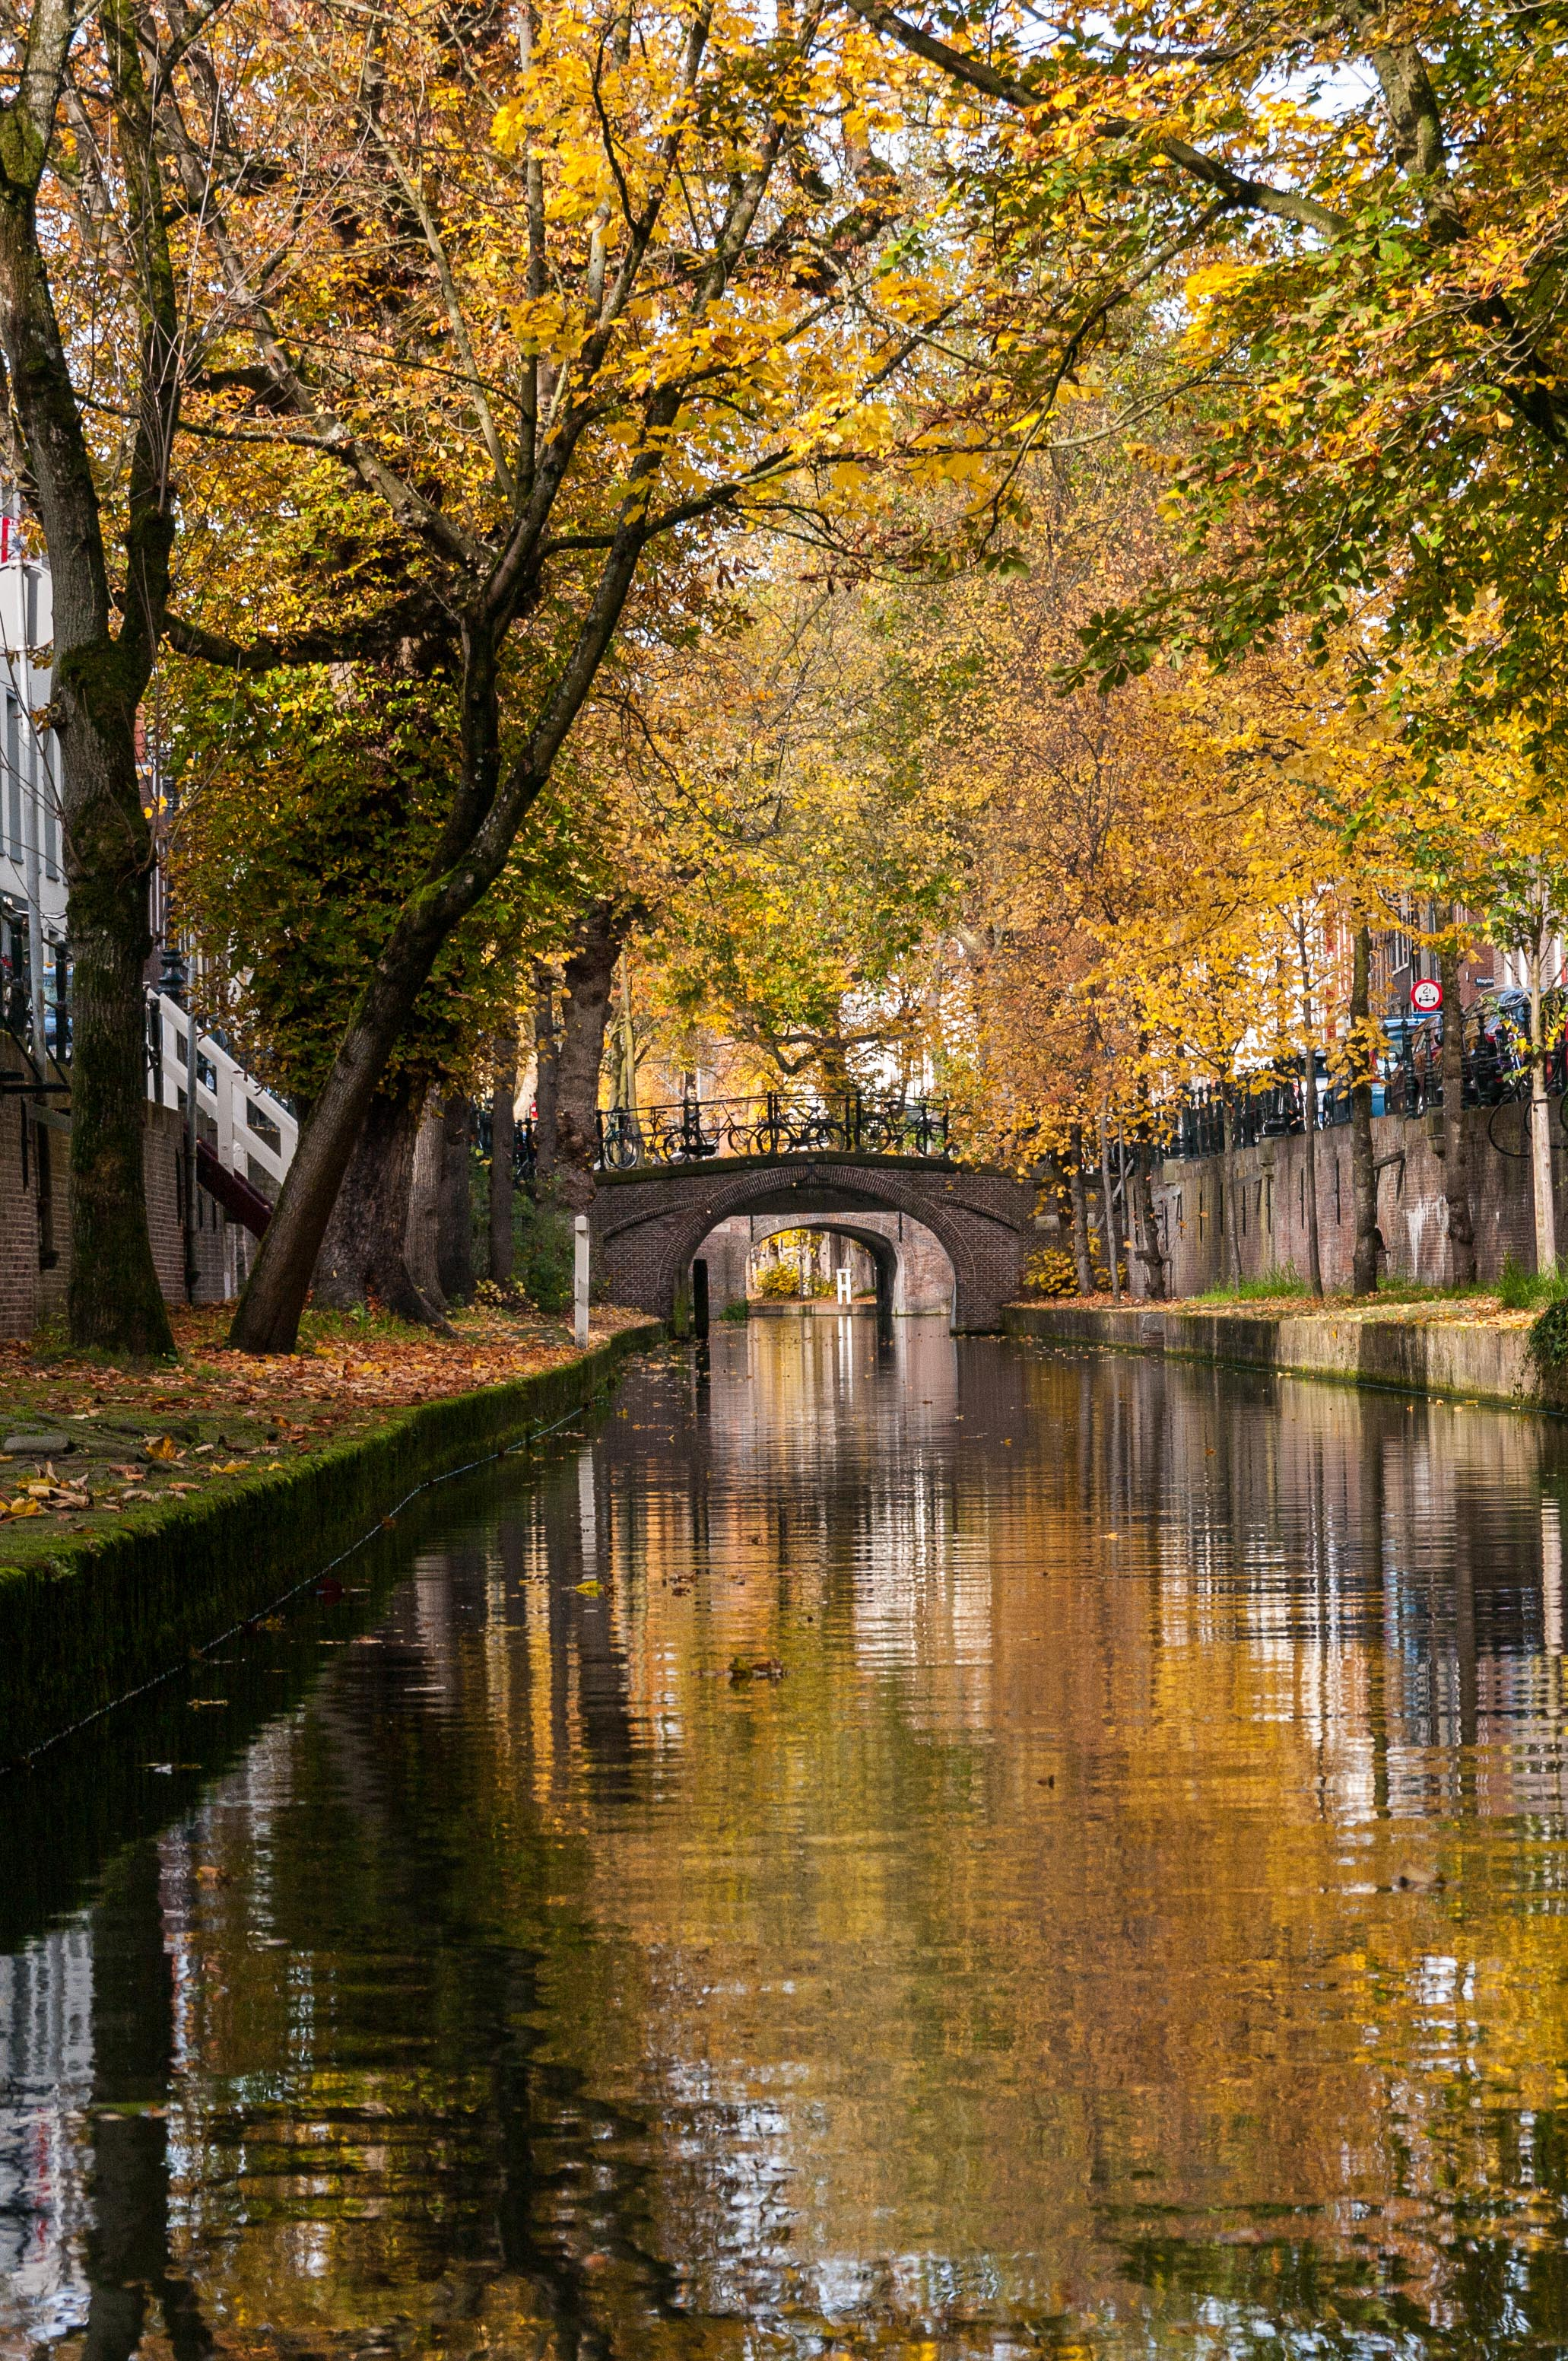 The gorgeous fall foliage along the edge of the canal in Utrecht, Netherlands